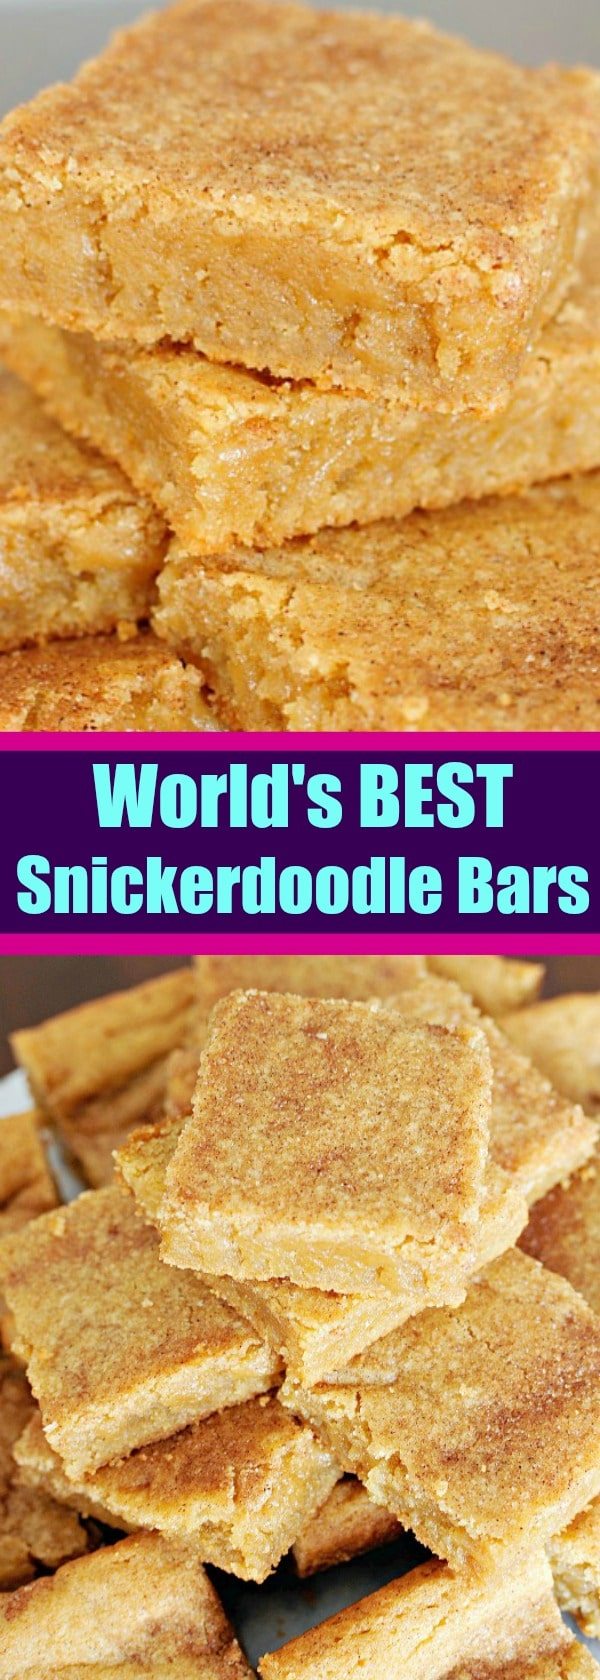 soft-and-chewy-snickerdoodle-bars-2